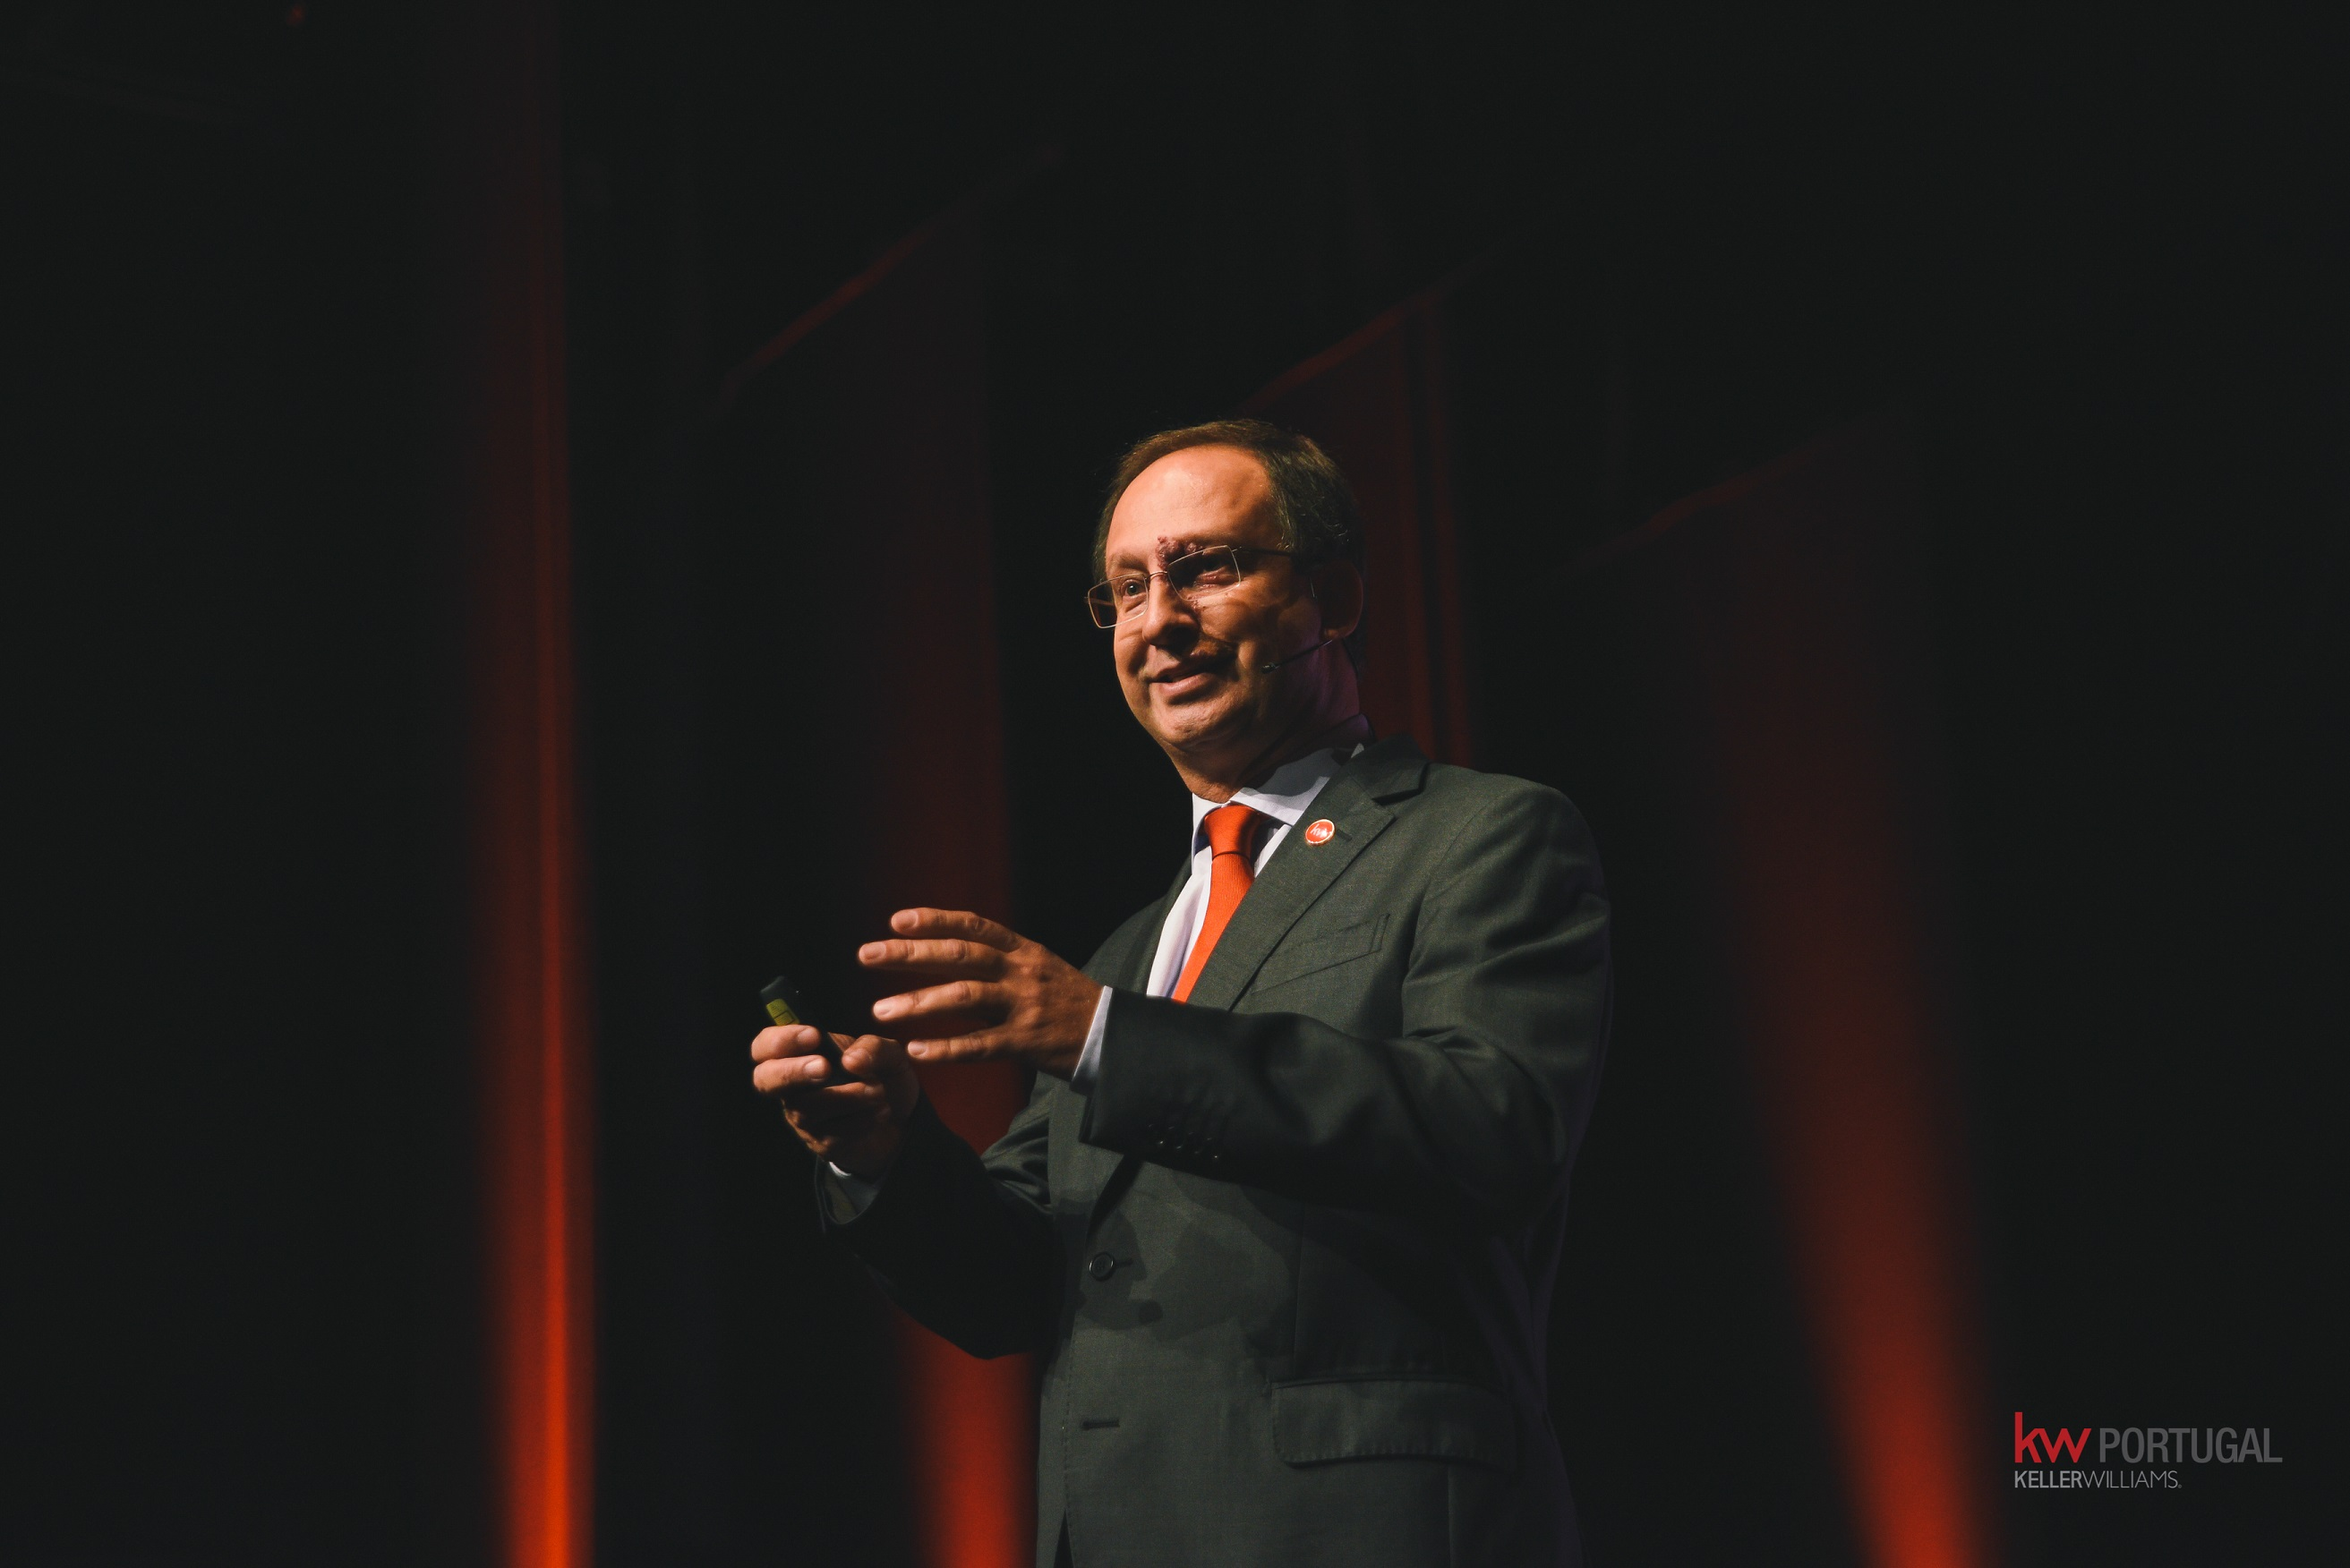 Eduardo Garcia e Costa, CEO da KW Portugal / Keller Williams